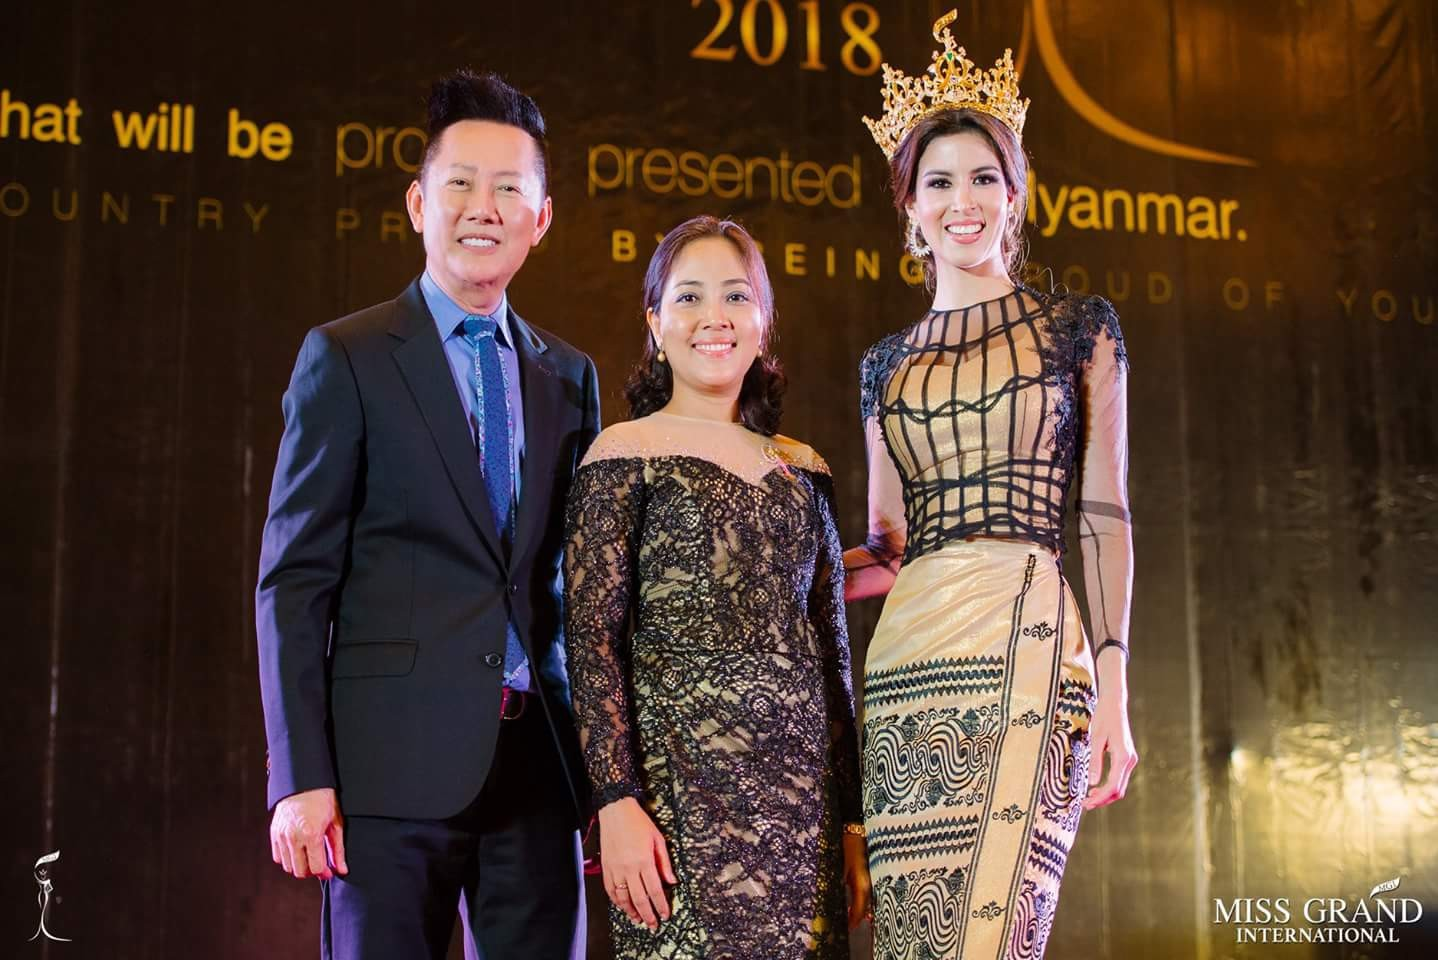 August 10, 2018 BY mgi Miss Grand International 2018 Official Press